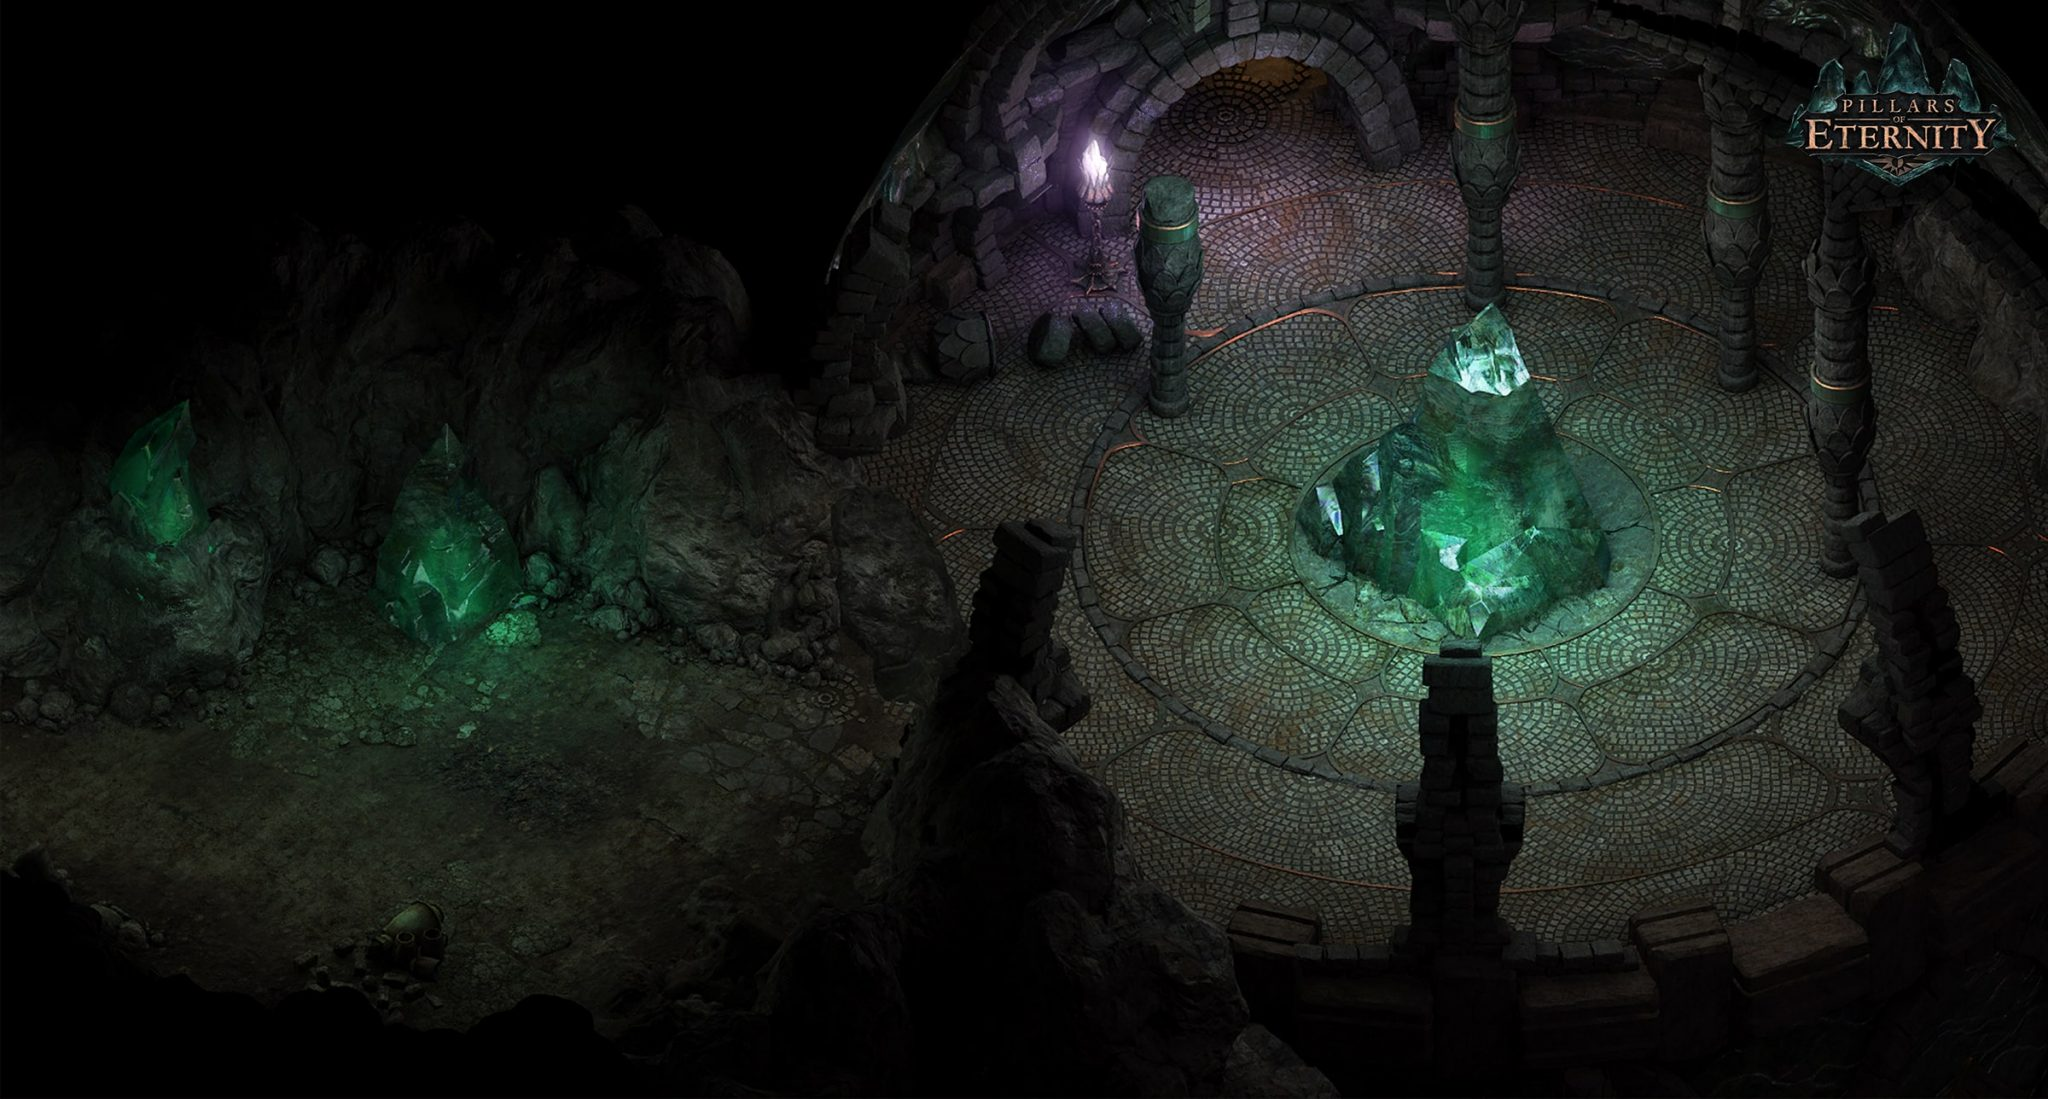 Pillars of Eternity (3)